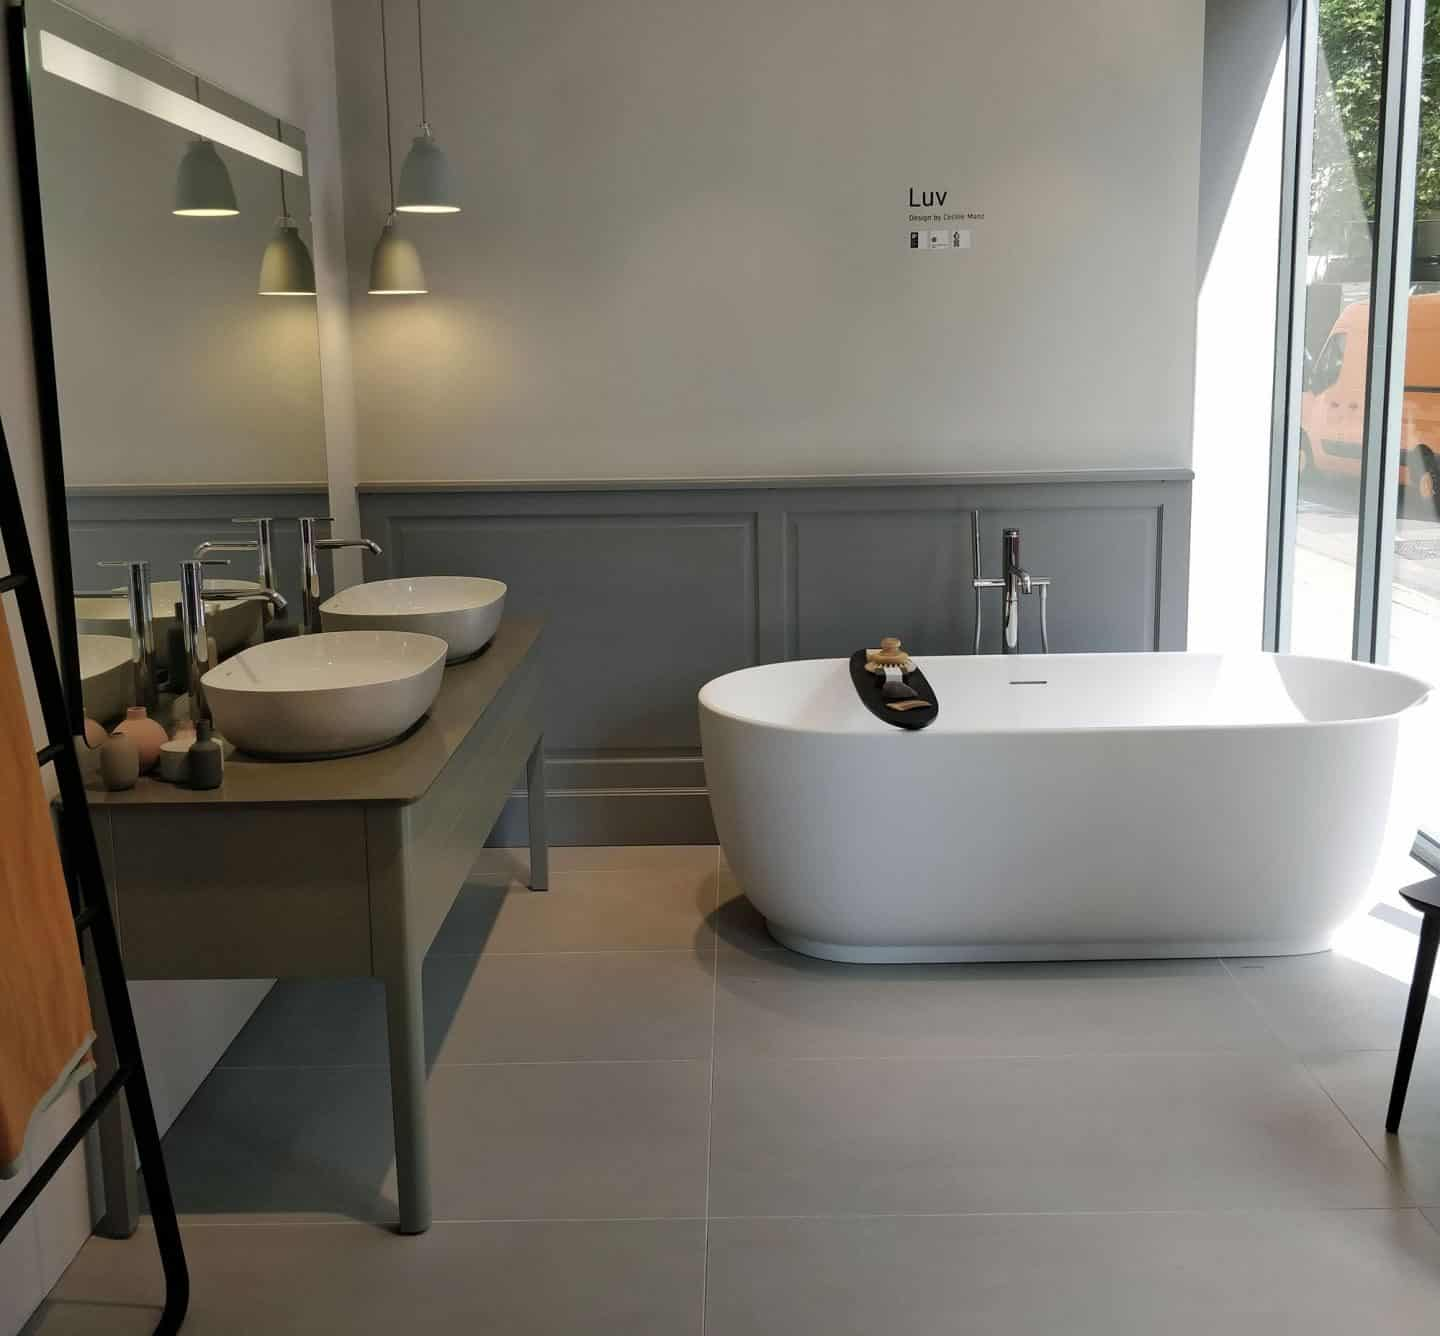 Luv bathroom collection in the Duravit Showroom in Clerkenwell